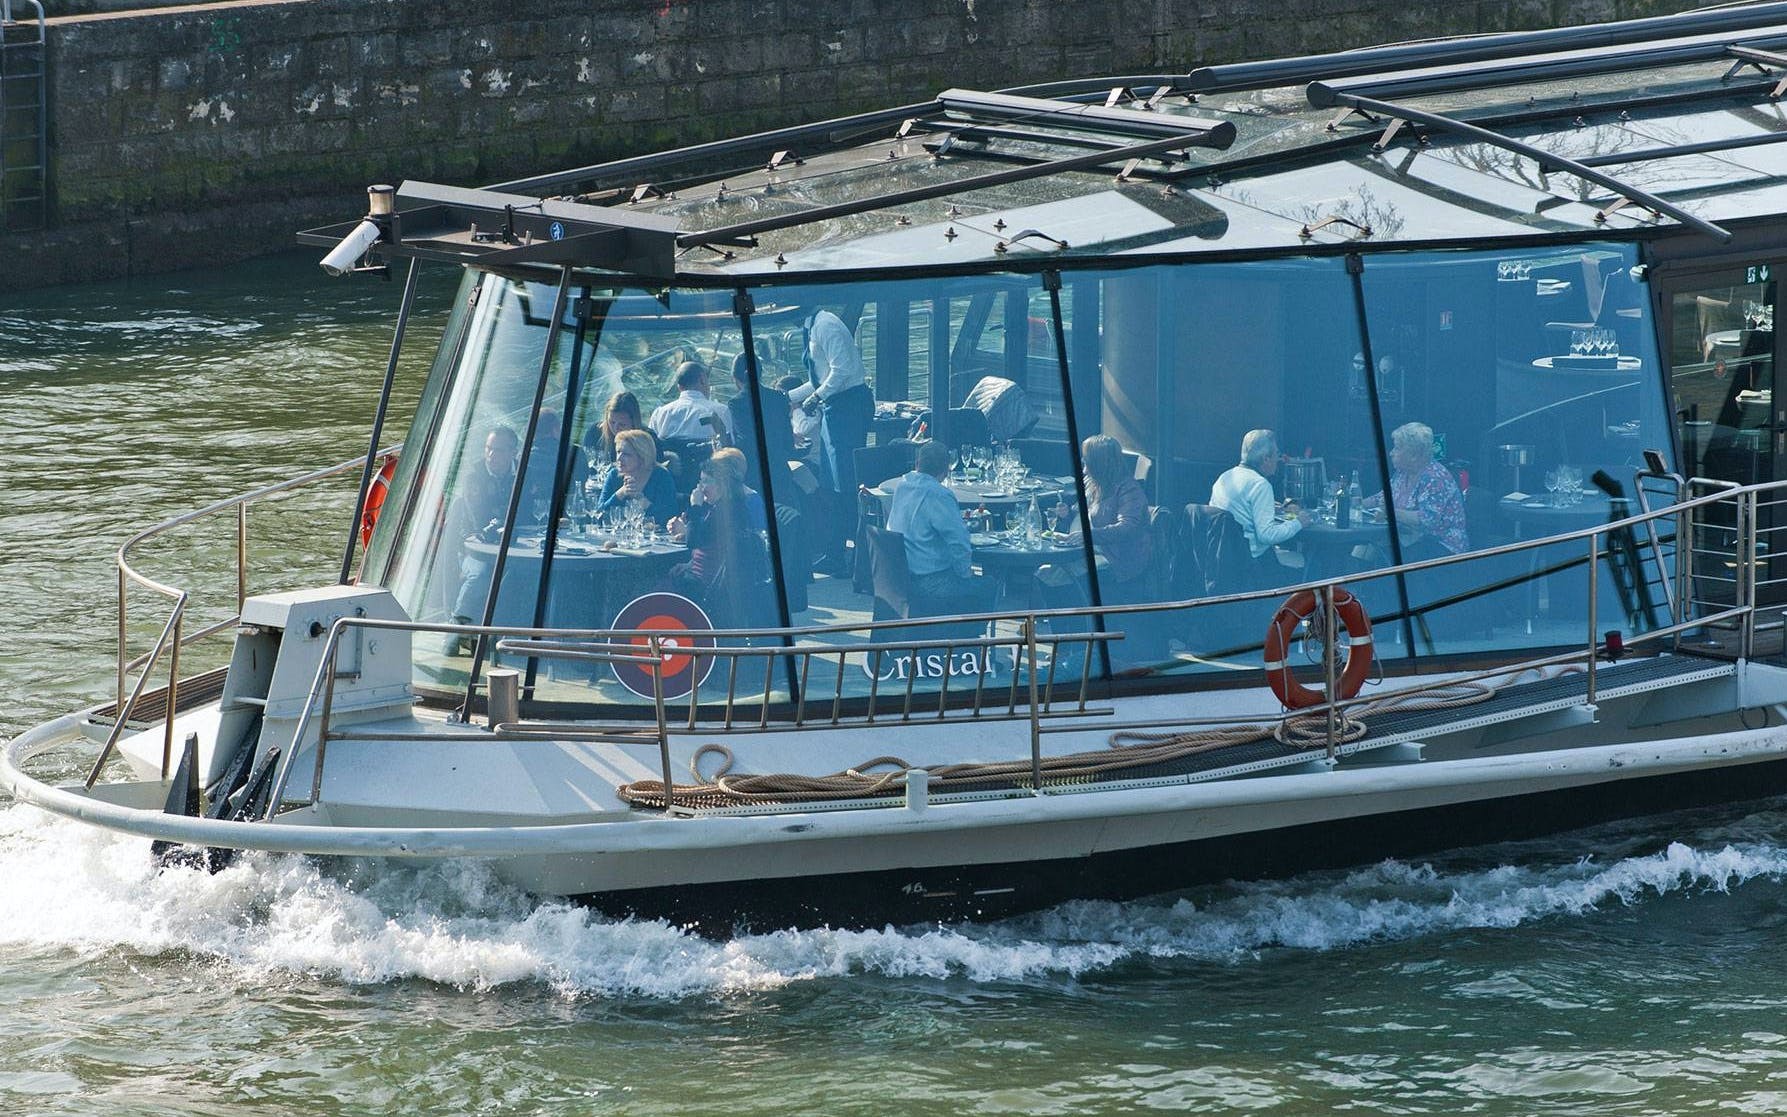 bateaux parisiens seine lunch cruise with live music & audio commentary-2